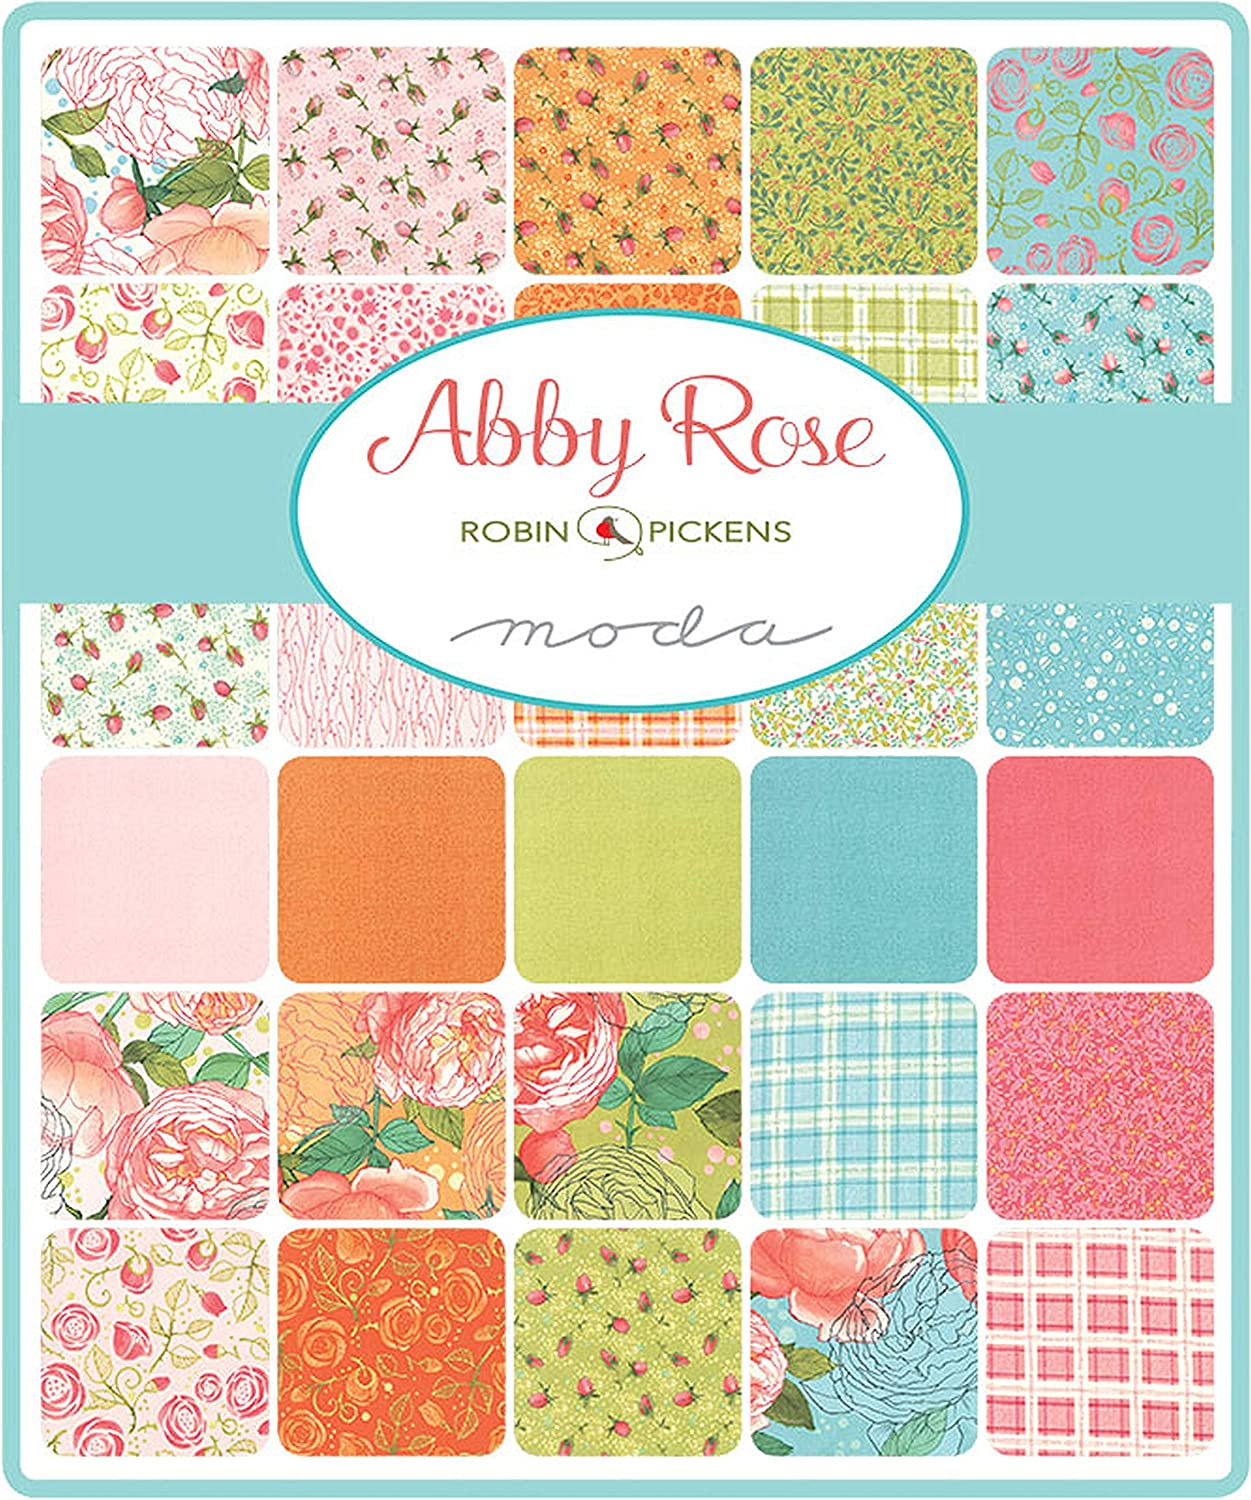 Abby Rose Mini Charm Pack by Robin Pickens; 42-2.5 Inch Precut Fabric Quilt Squares